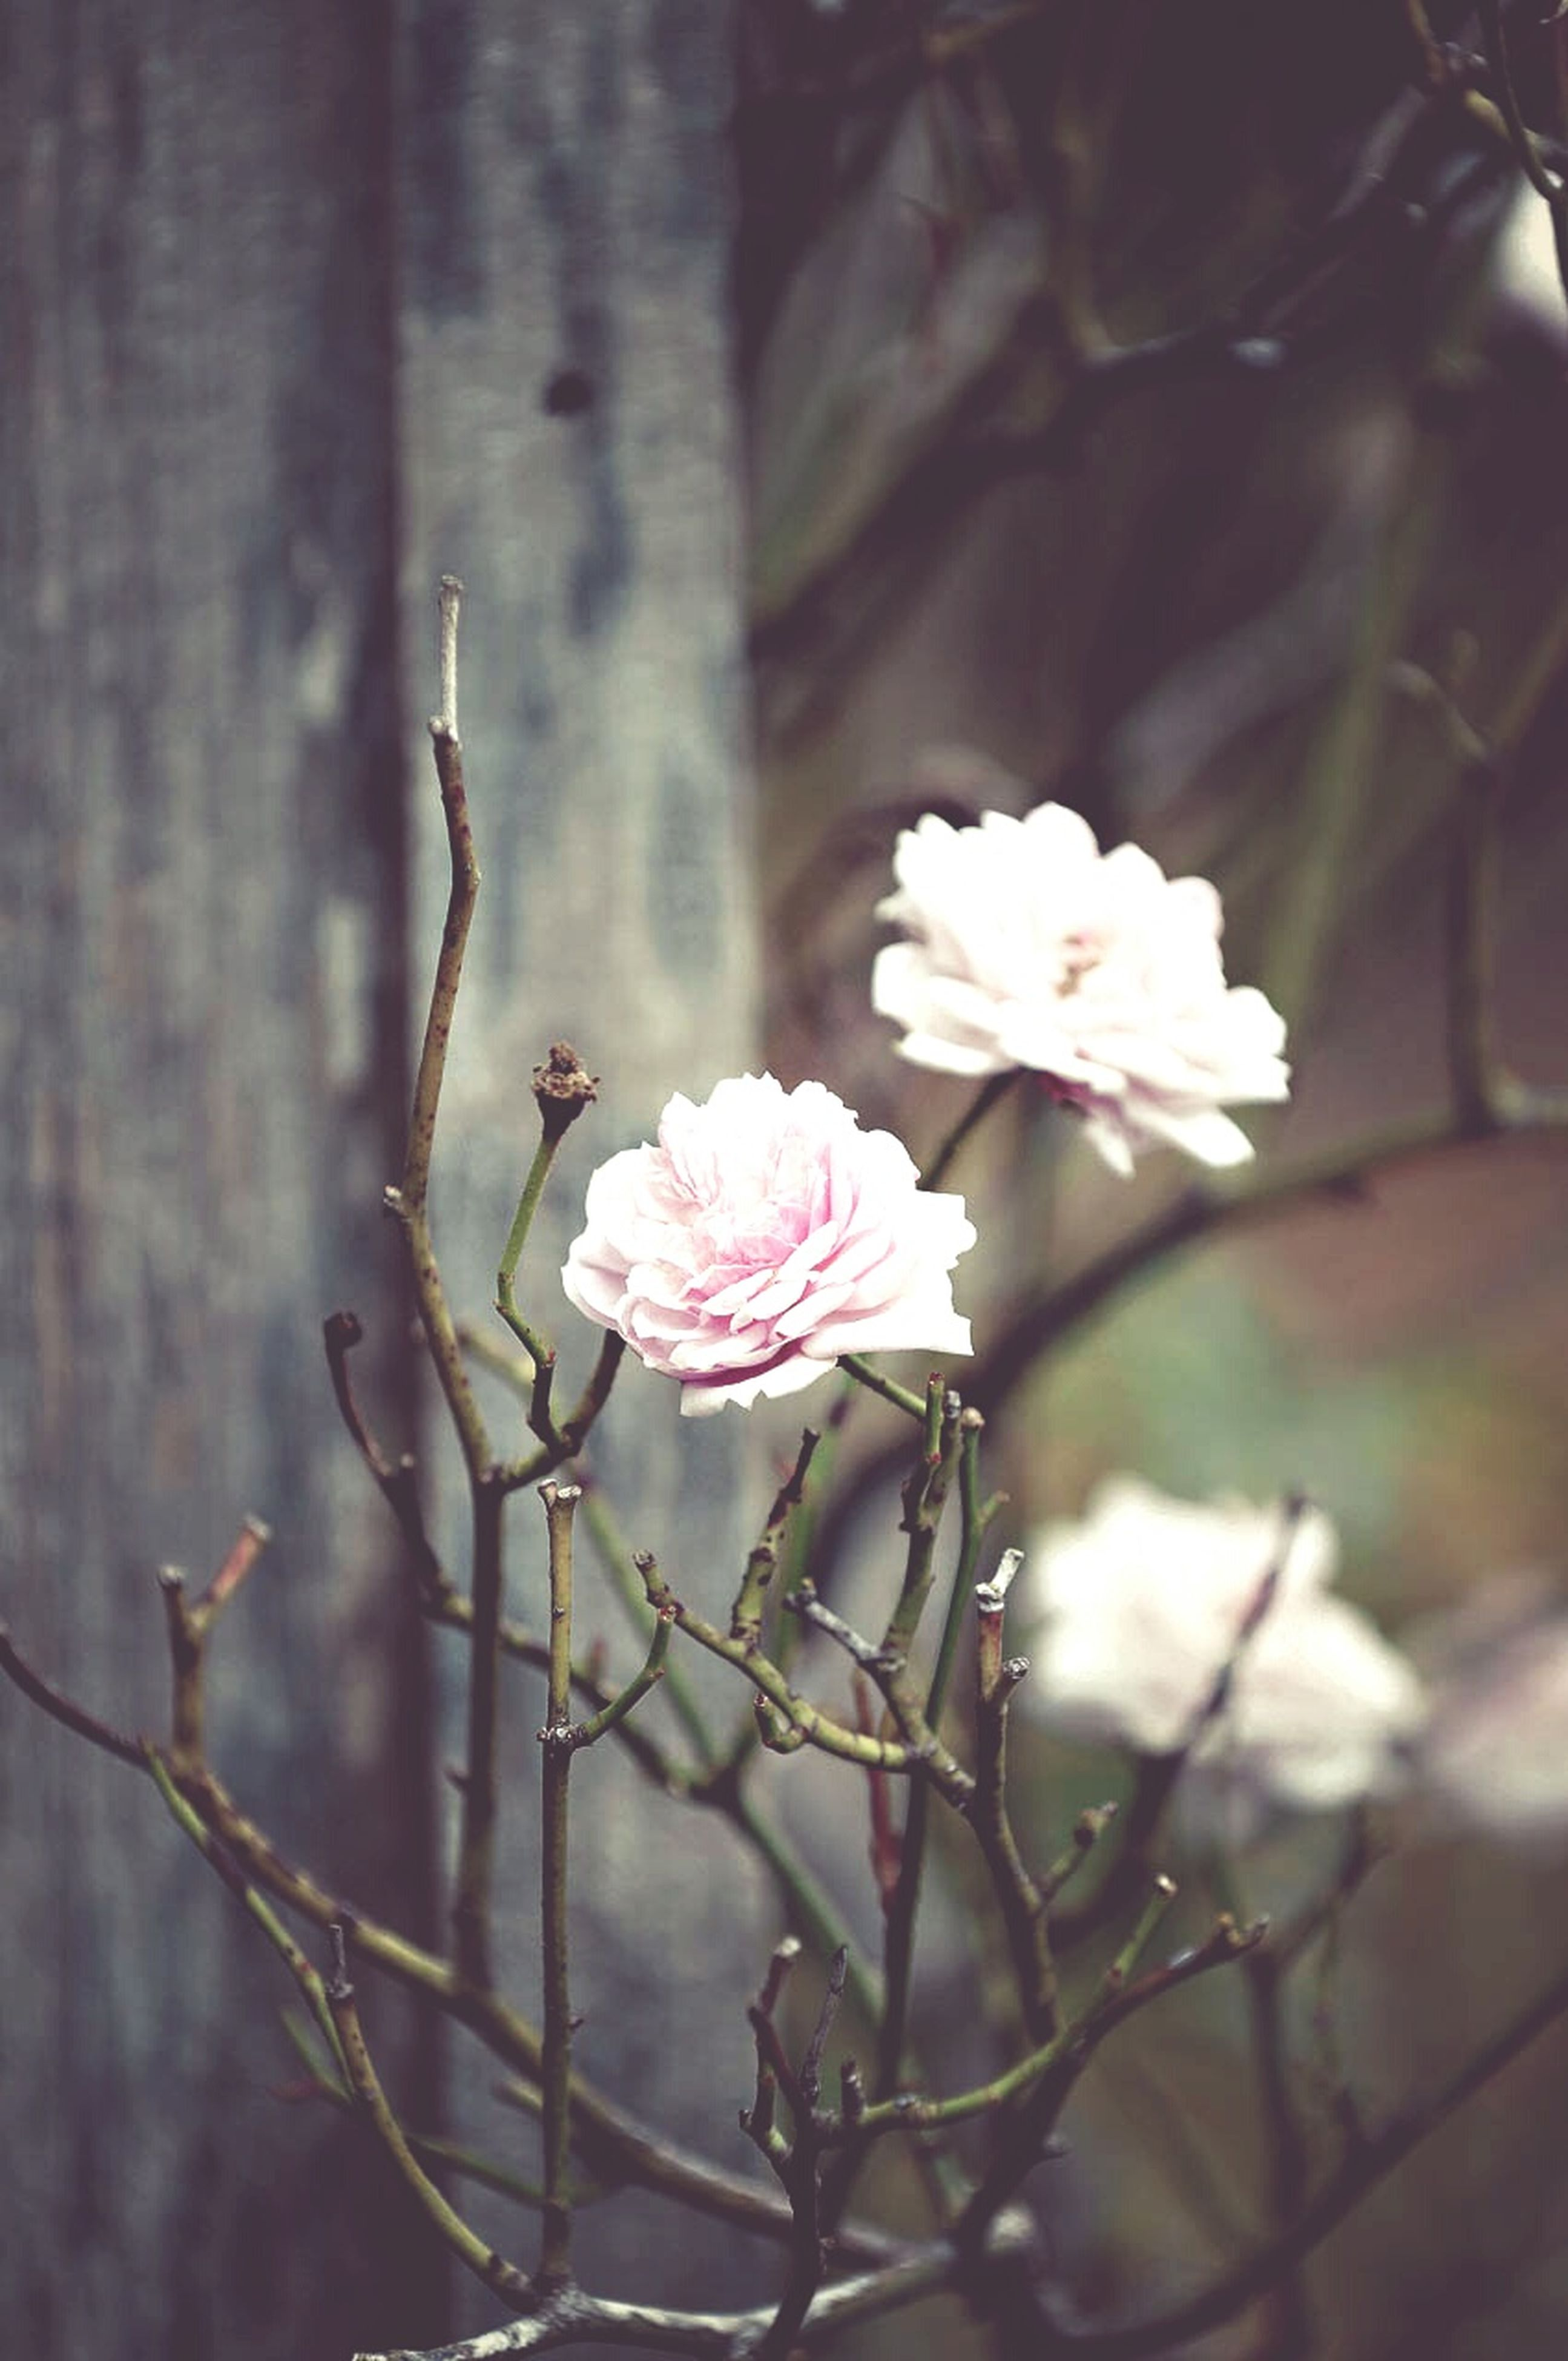 flower, freshness, fragility, growth, petal, branch, beauty in nature, focus on foreground, close-up, nature, blossom, flower head, blooming, white color, in bloom, stem, tree, twig, plant, springtime